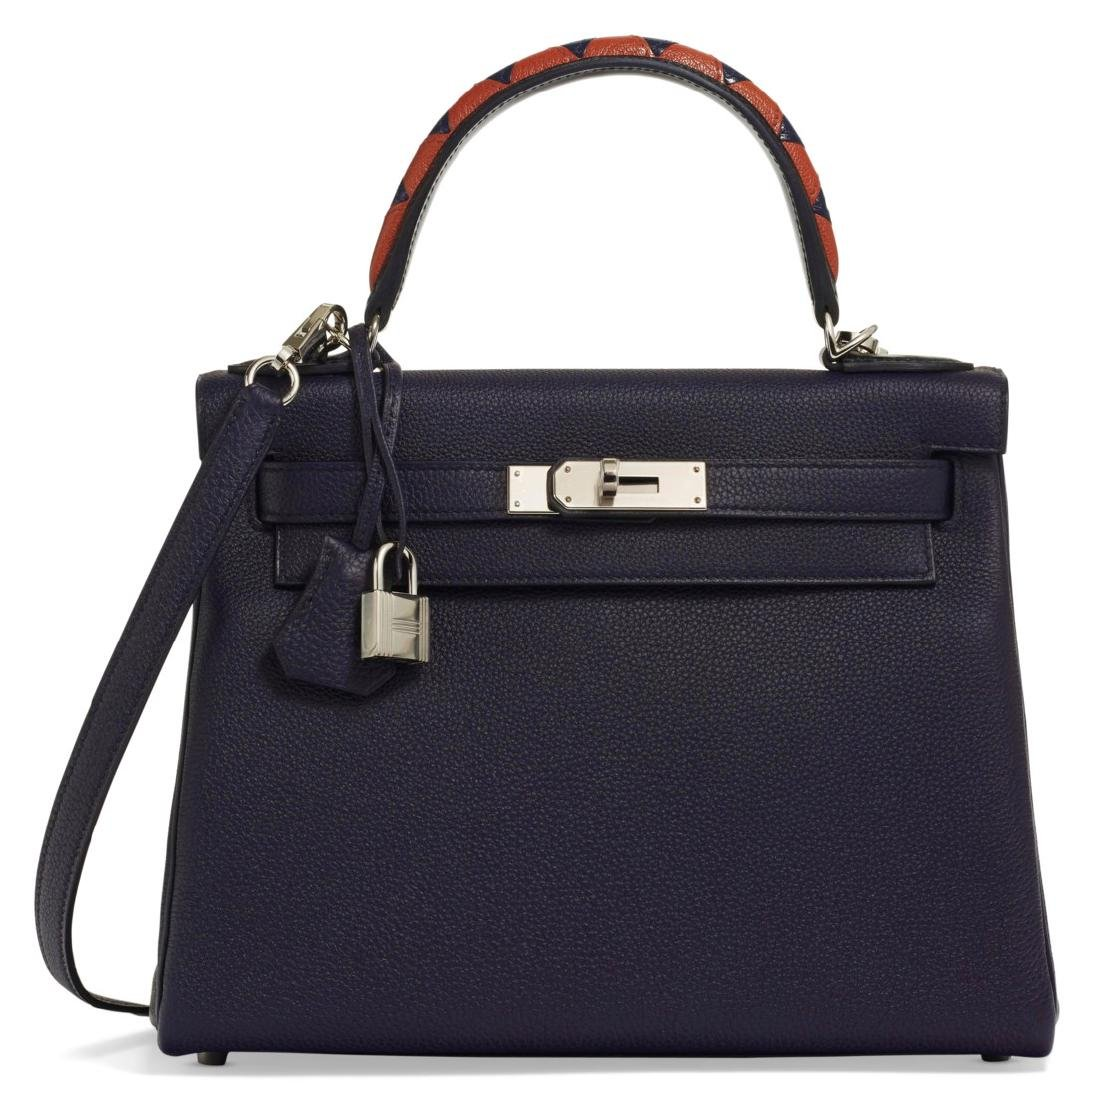 A LIMITED EDITION INDIGO, BLACK & CUIVRE TOGO LEATHER